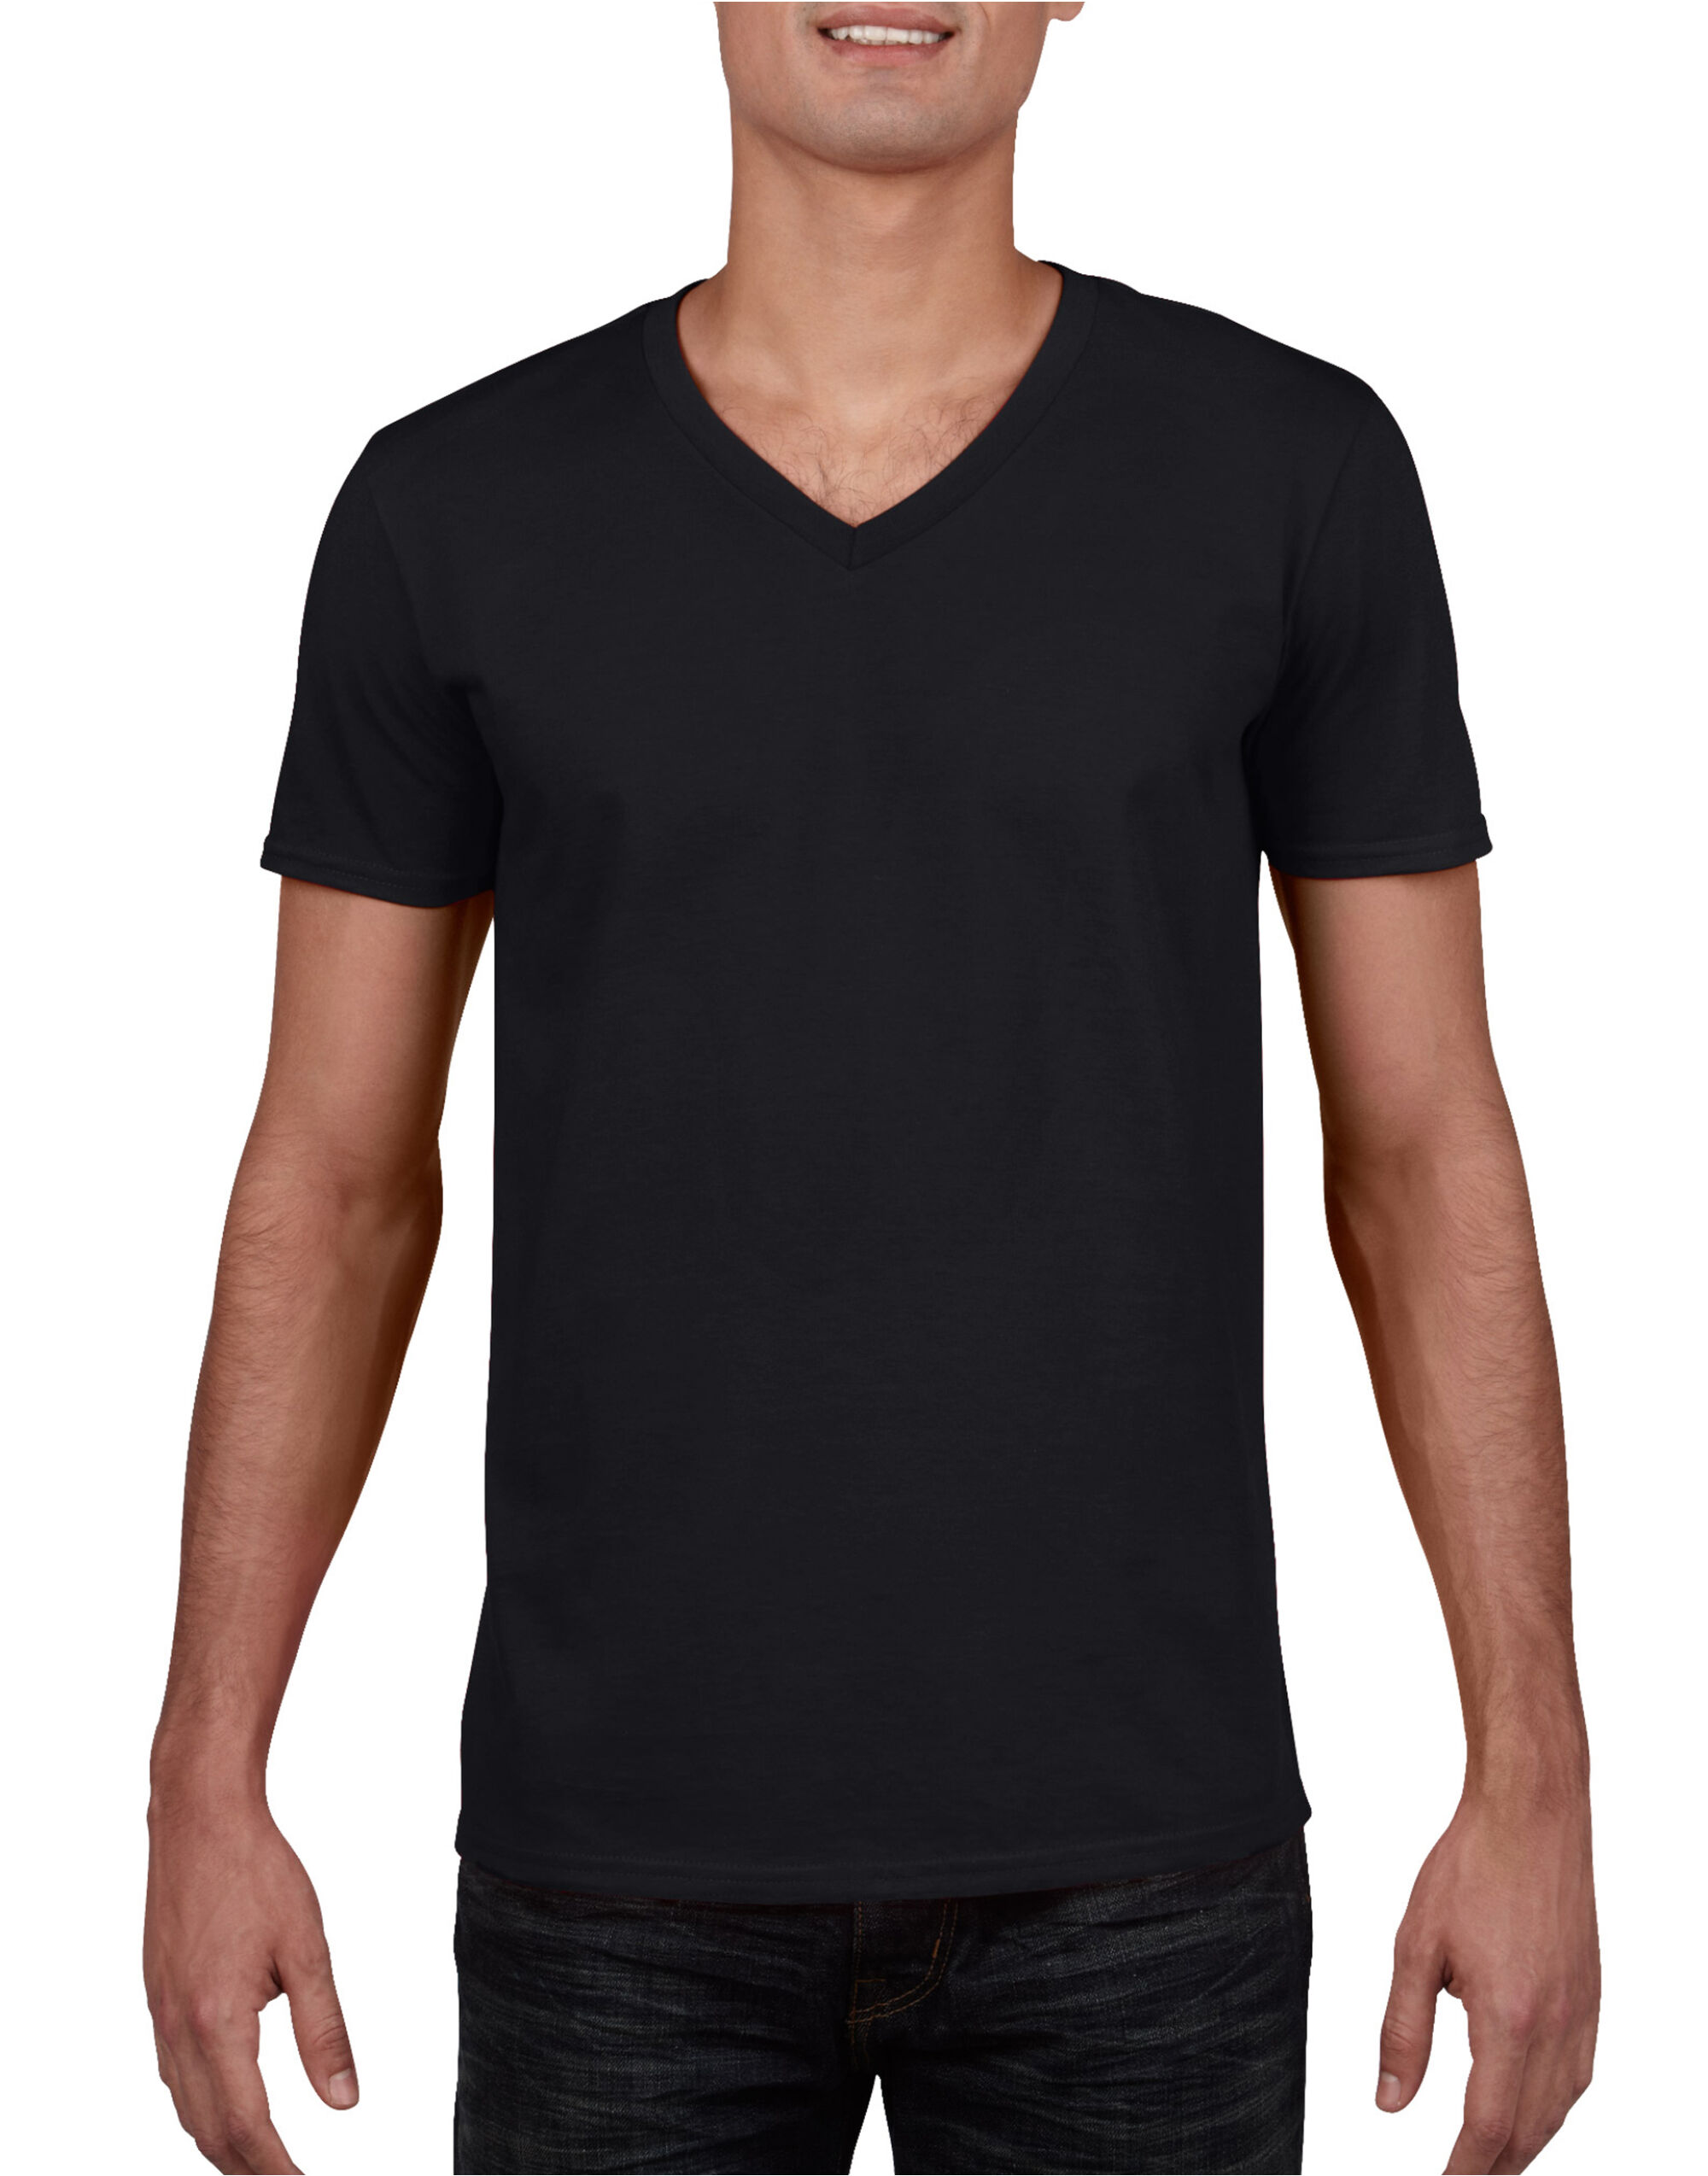 Men 39 s soft style v neck t shirt gildan mens short sleeve t for Gildan v neck t shirts for men